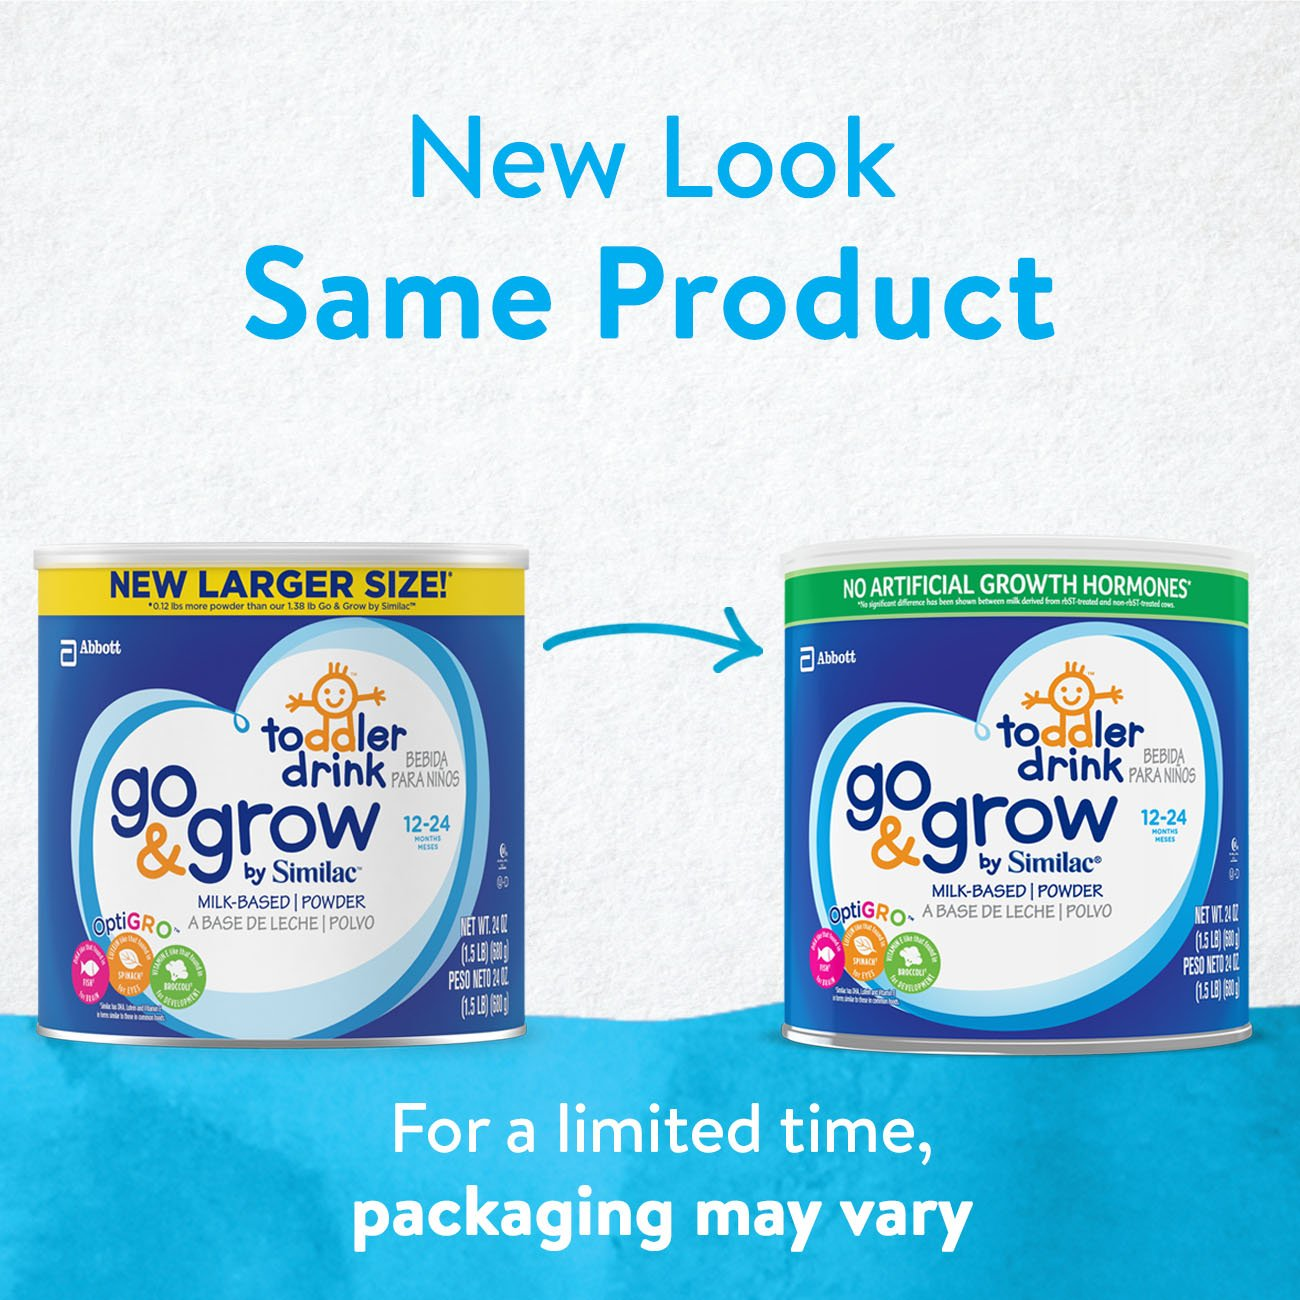 Go & Grow By Similac Milk Based Toddler Drink, Large Size Powder, 24 ounces (Pack of 6) by Similac (Image #3)